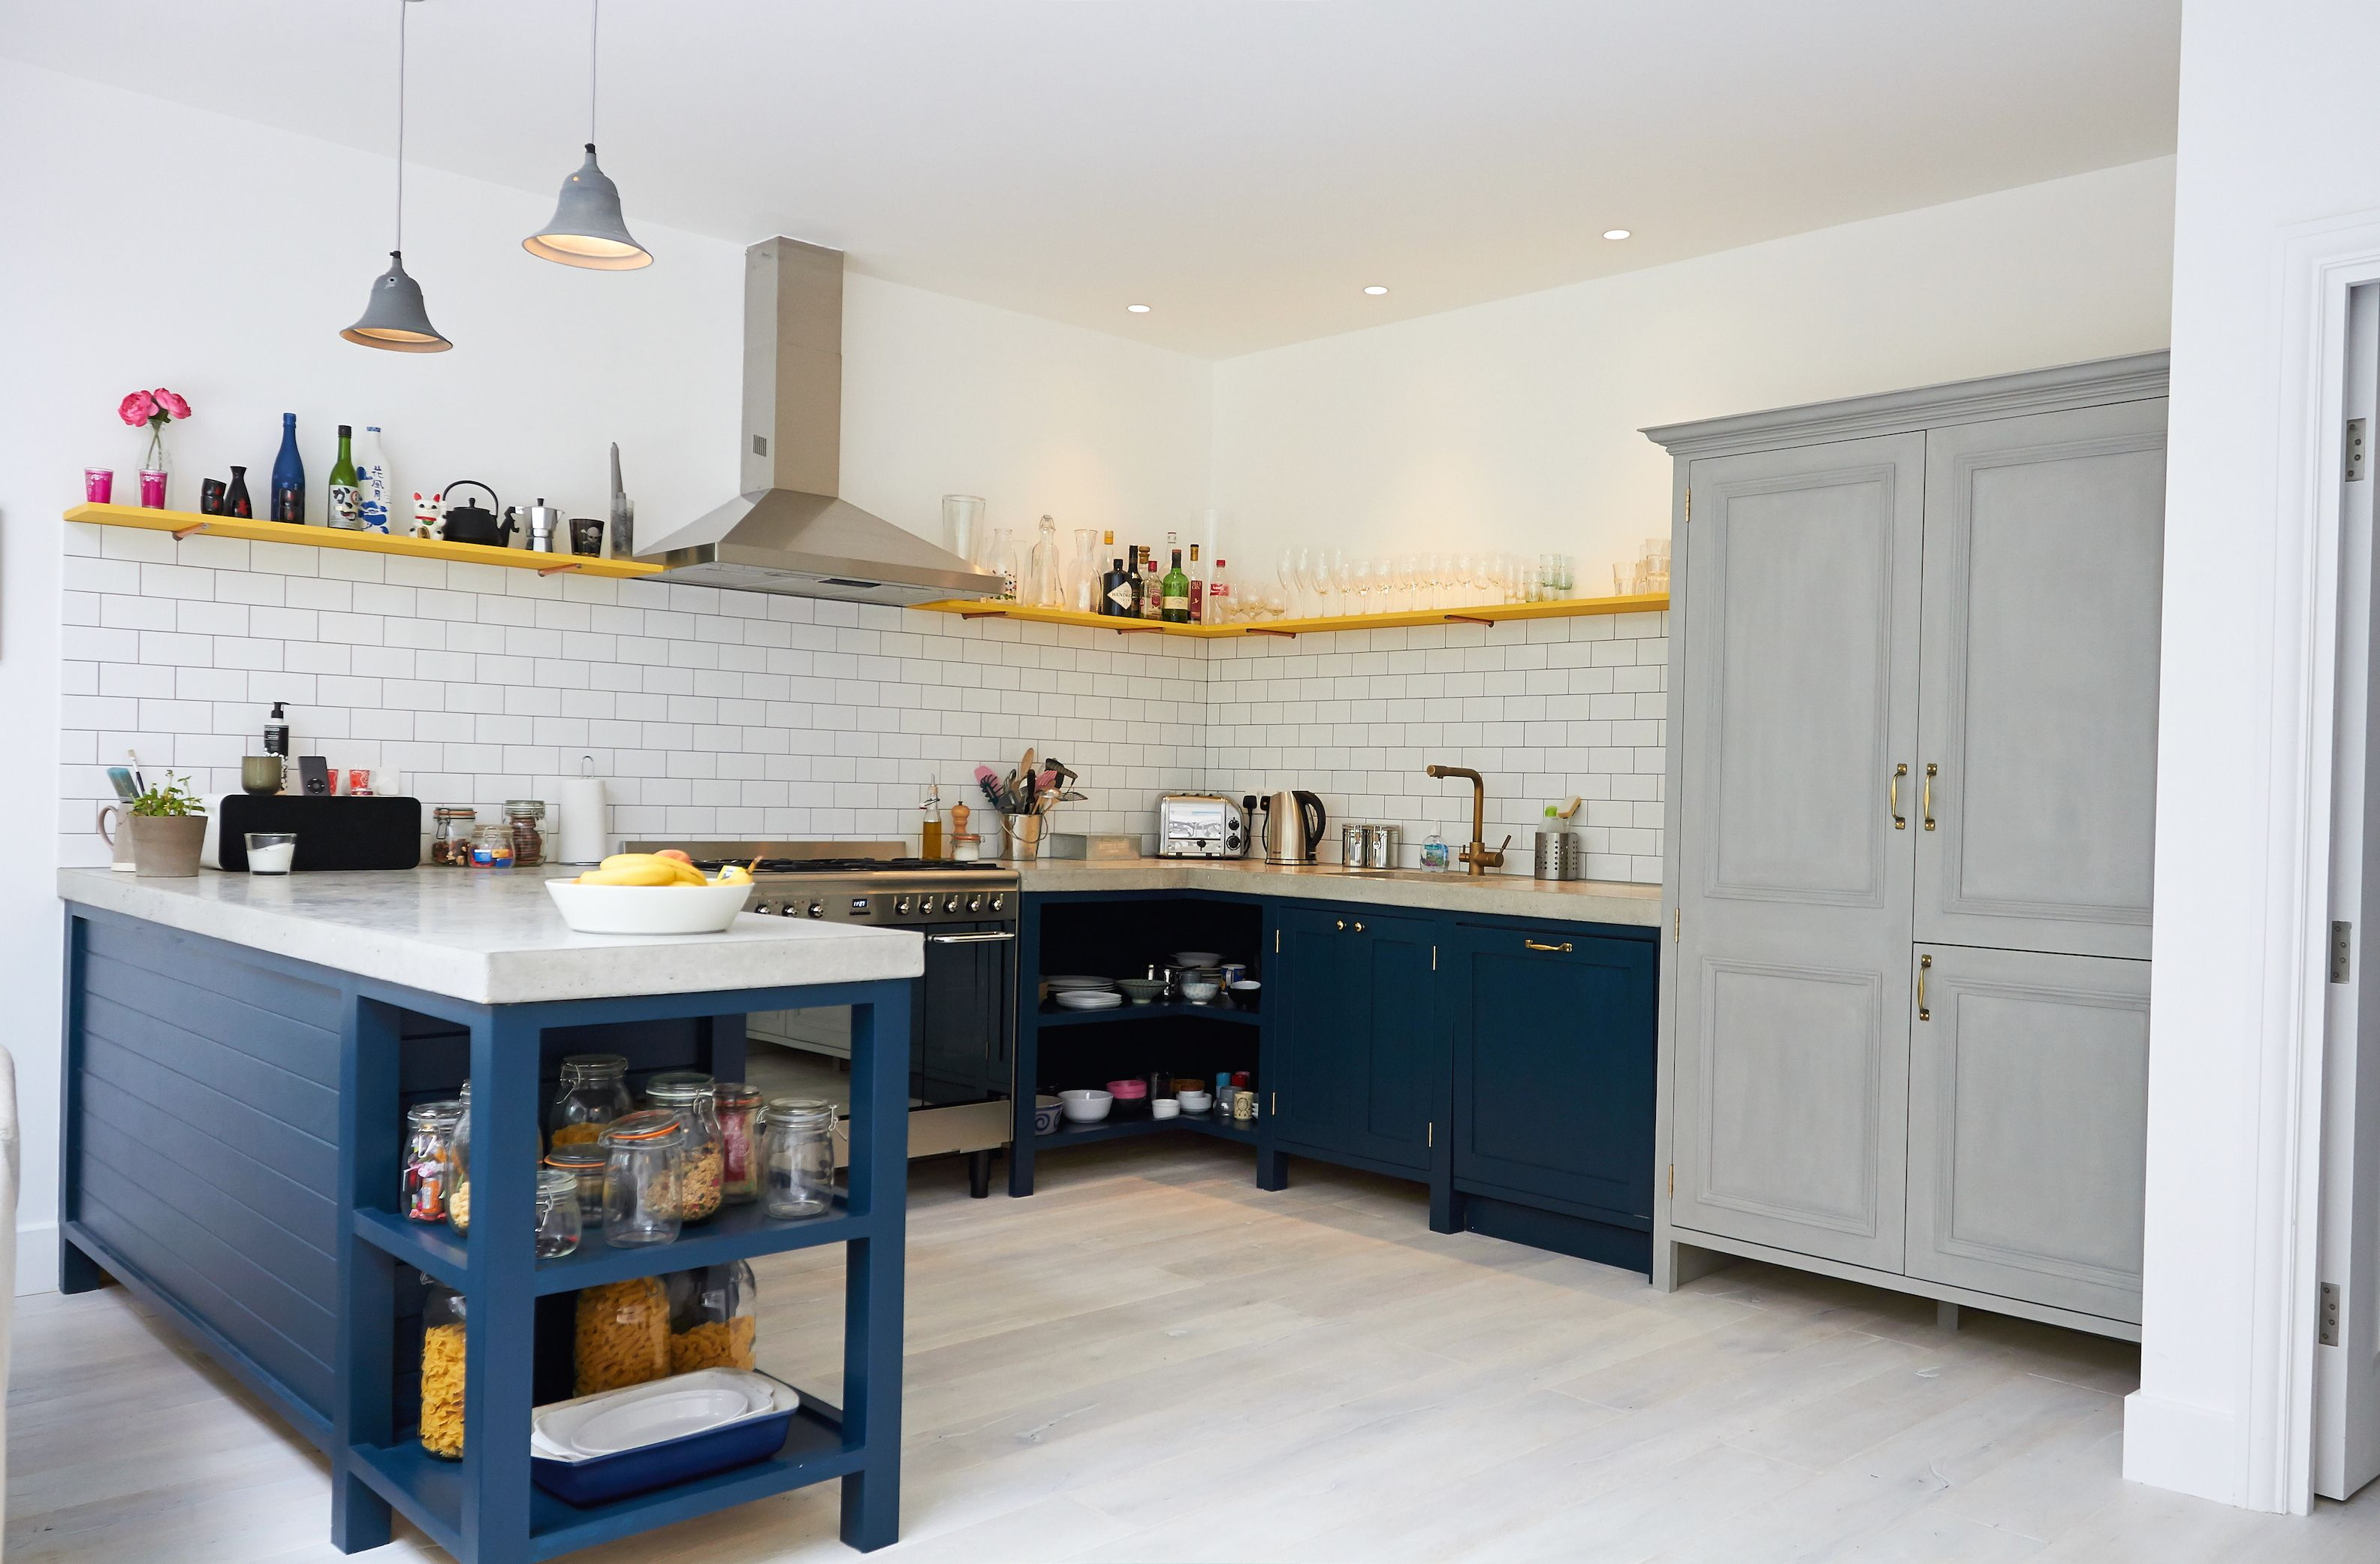 Best A Bespoke Painted Reclaimed Upcycled Kitchen London 400 x 300